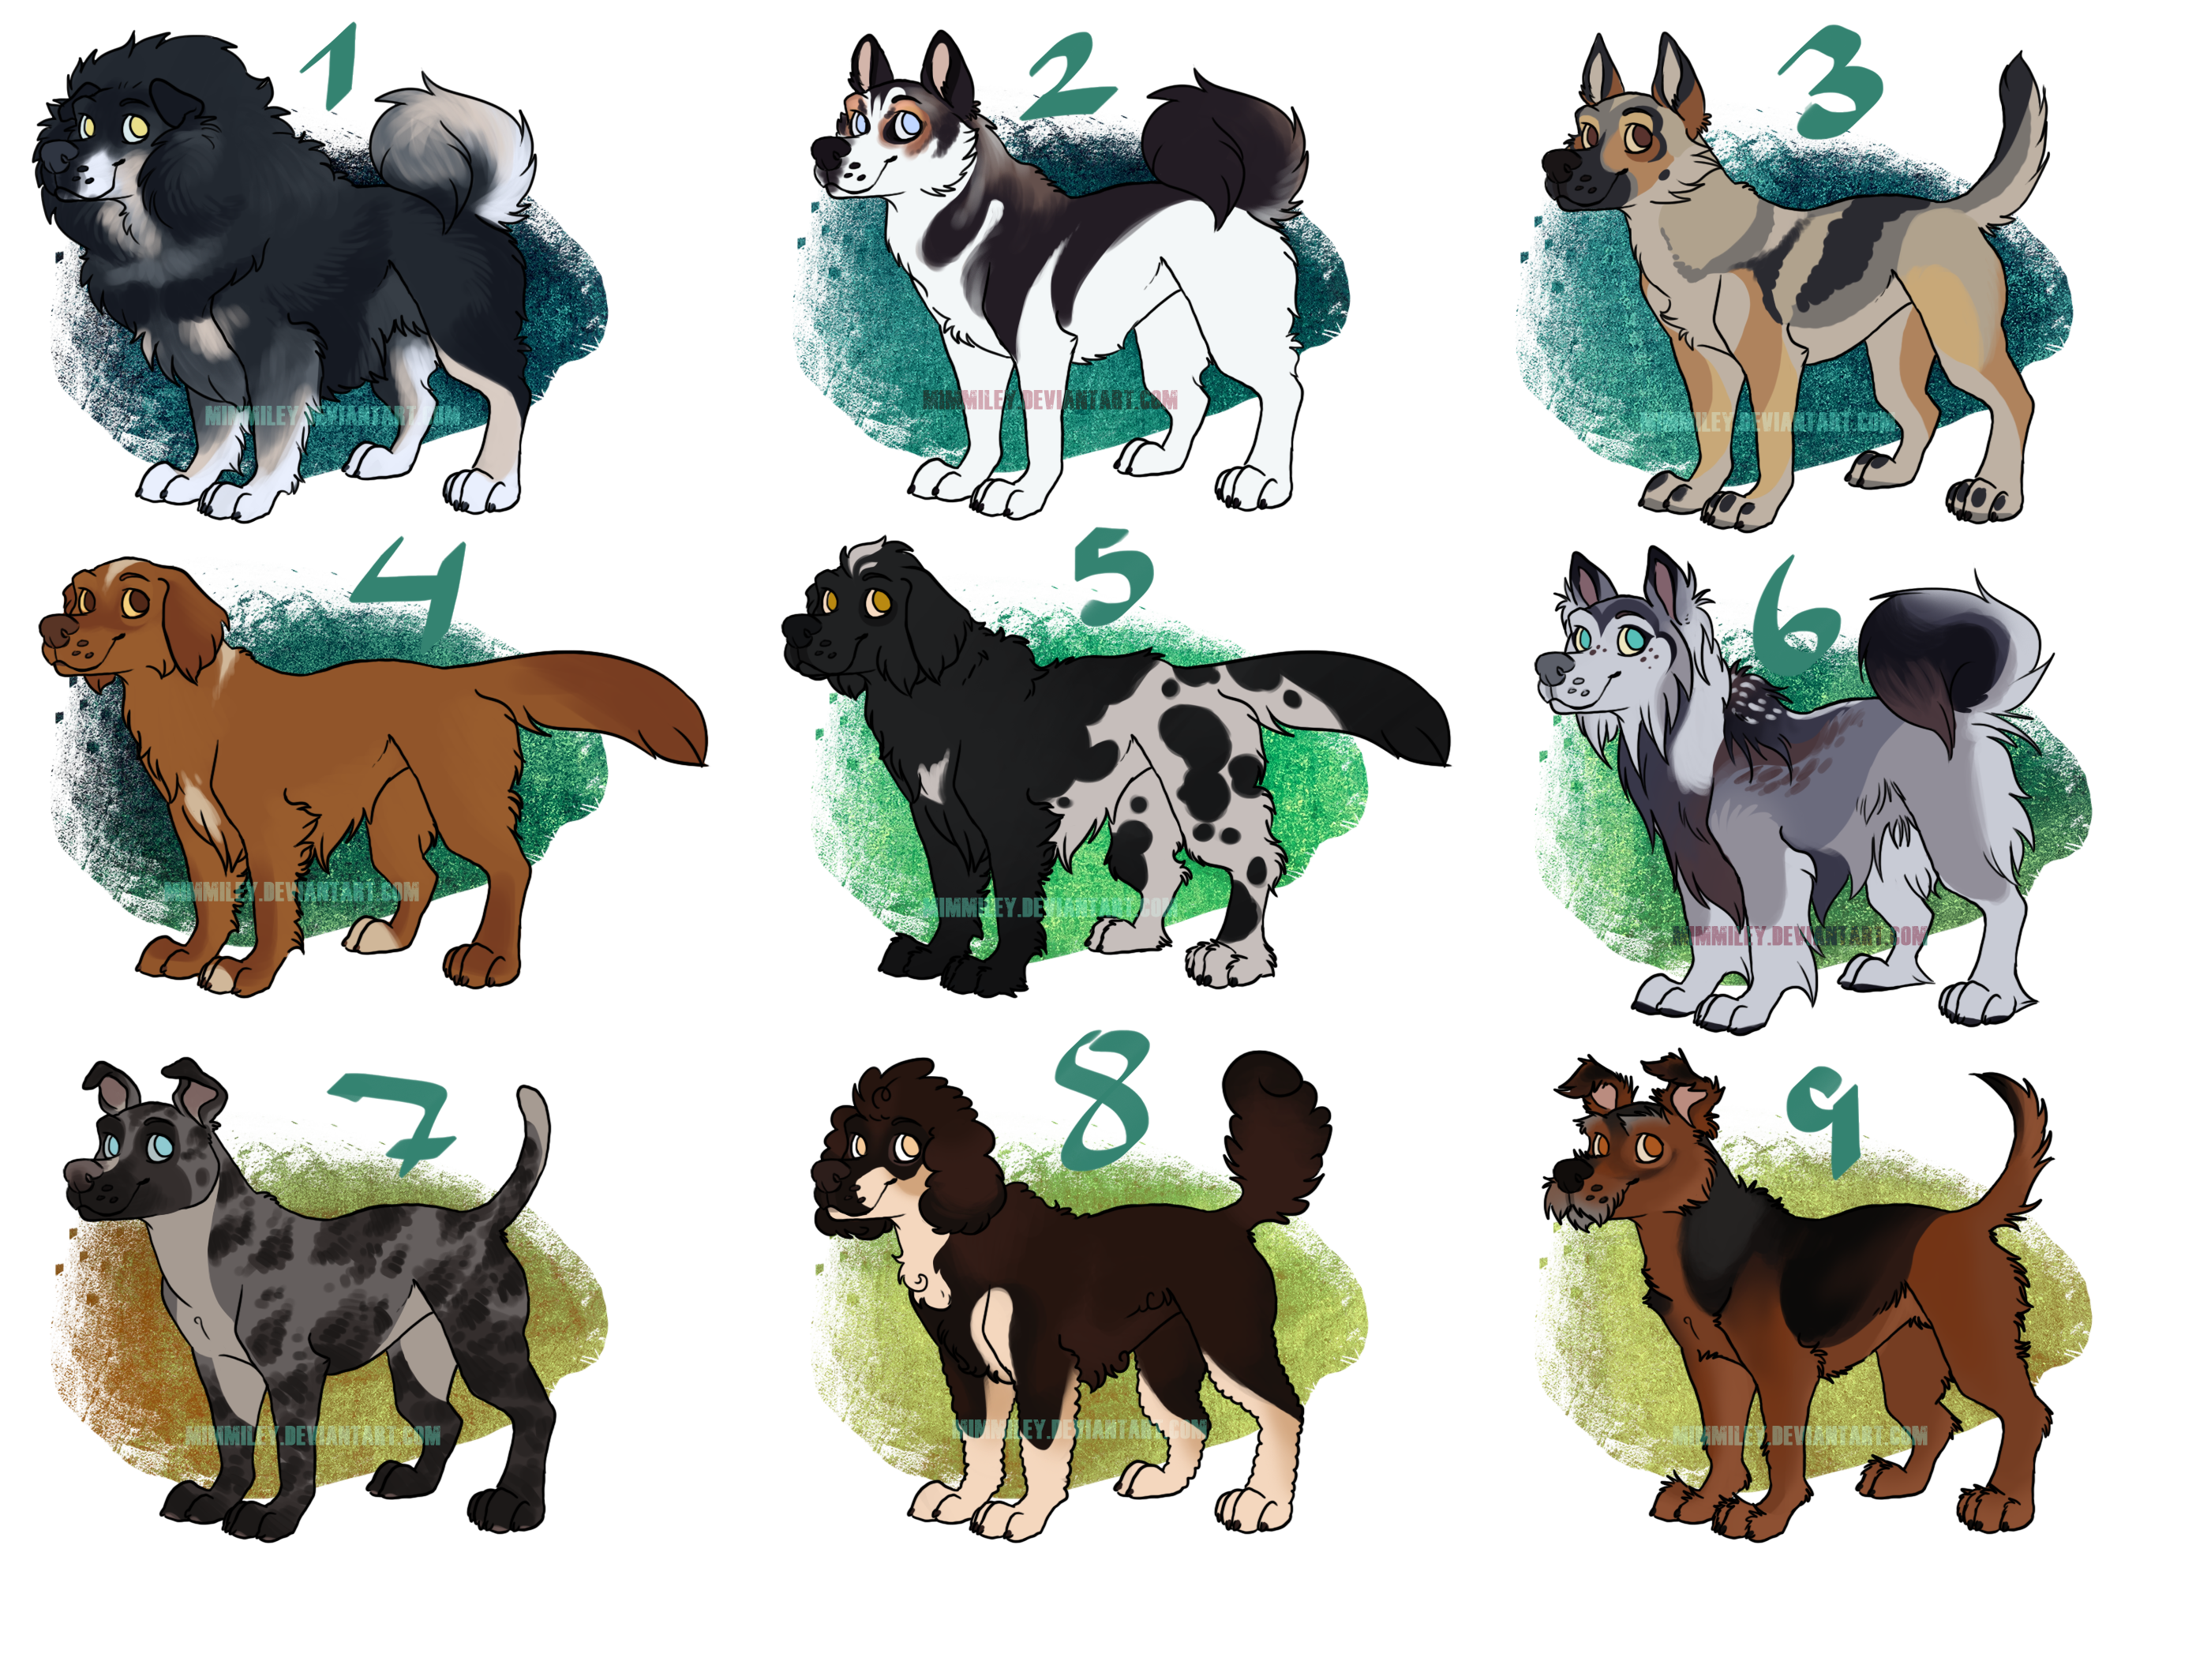 Trade drawing dog shelter. Dogs variety adoptable open